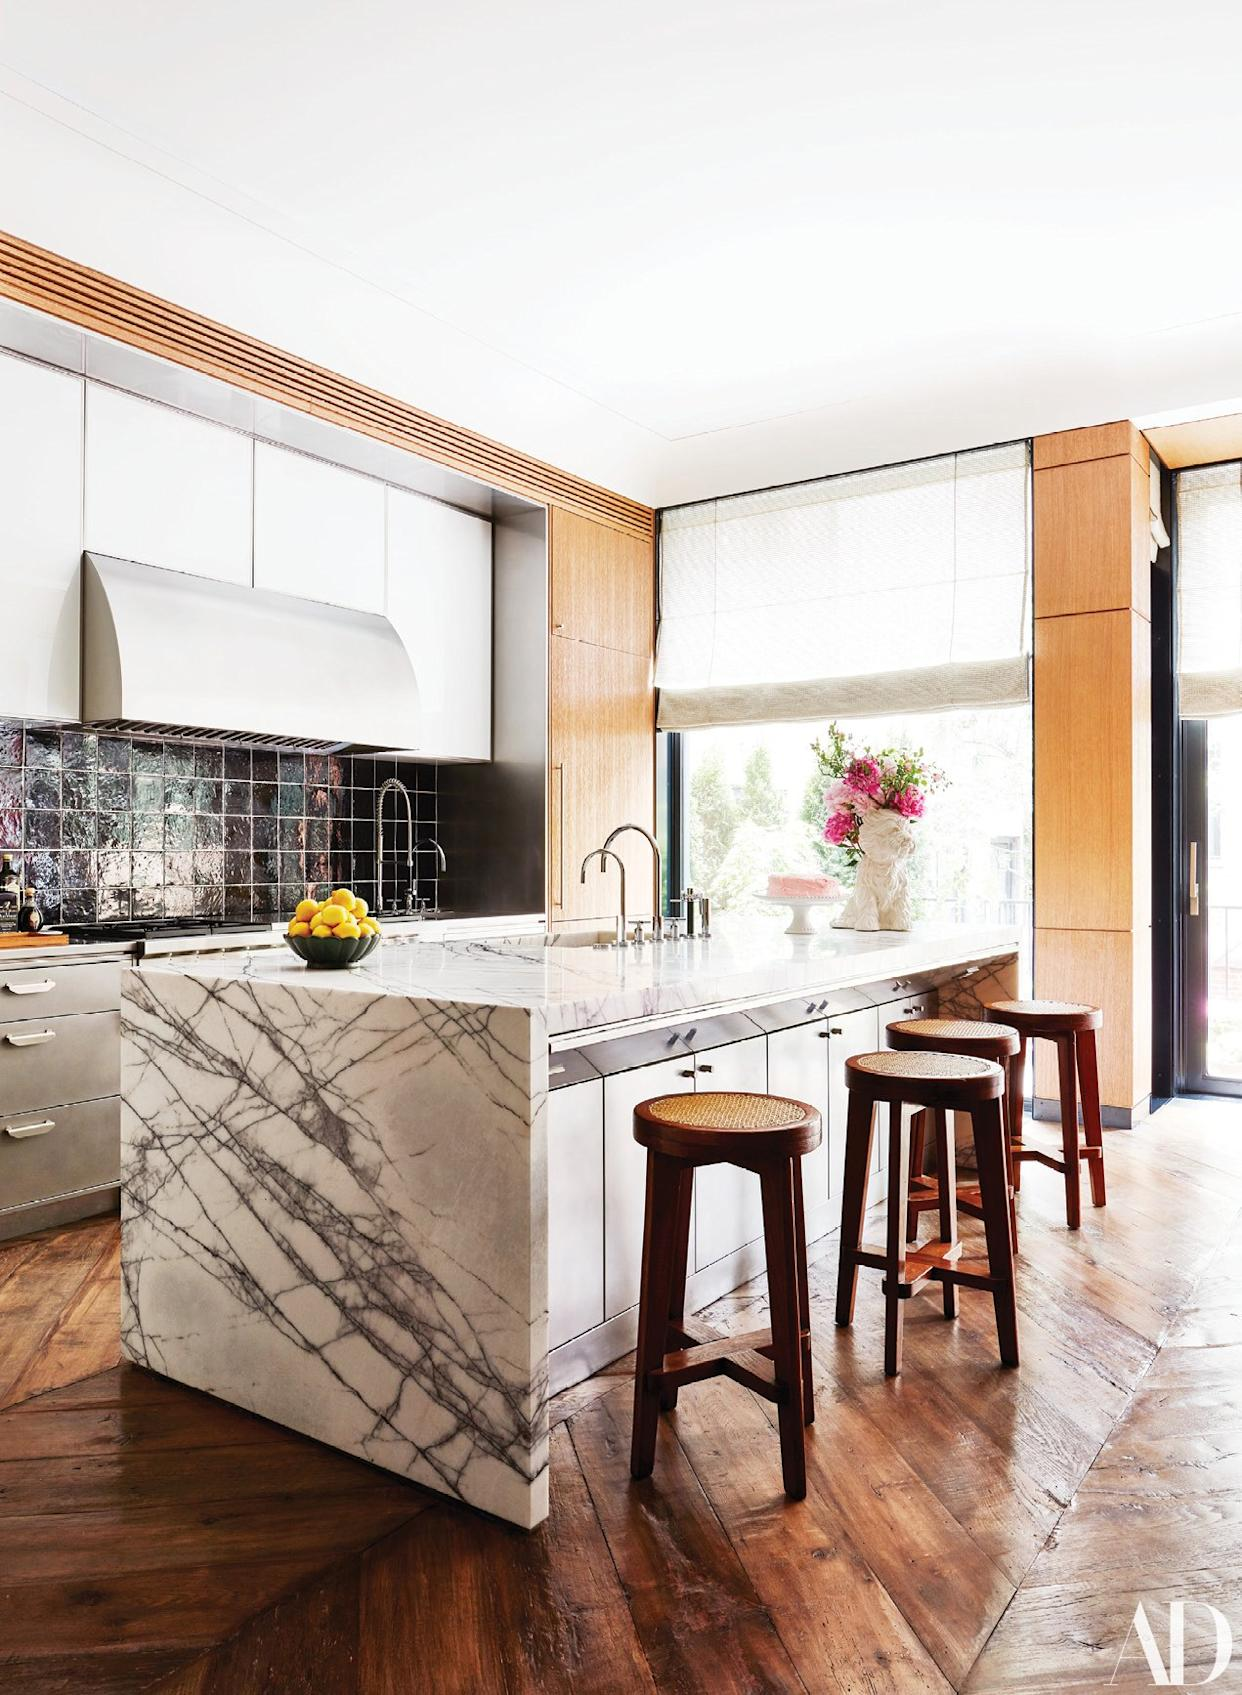 """<div class=""""caption""""> The kitchen features a custom hood and oak millwork by Ingrao. The backsplash is made of tiles by Exquisite surfaces; vintage Pierre Jeanneret stools. </div>"""